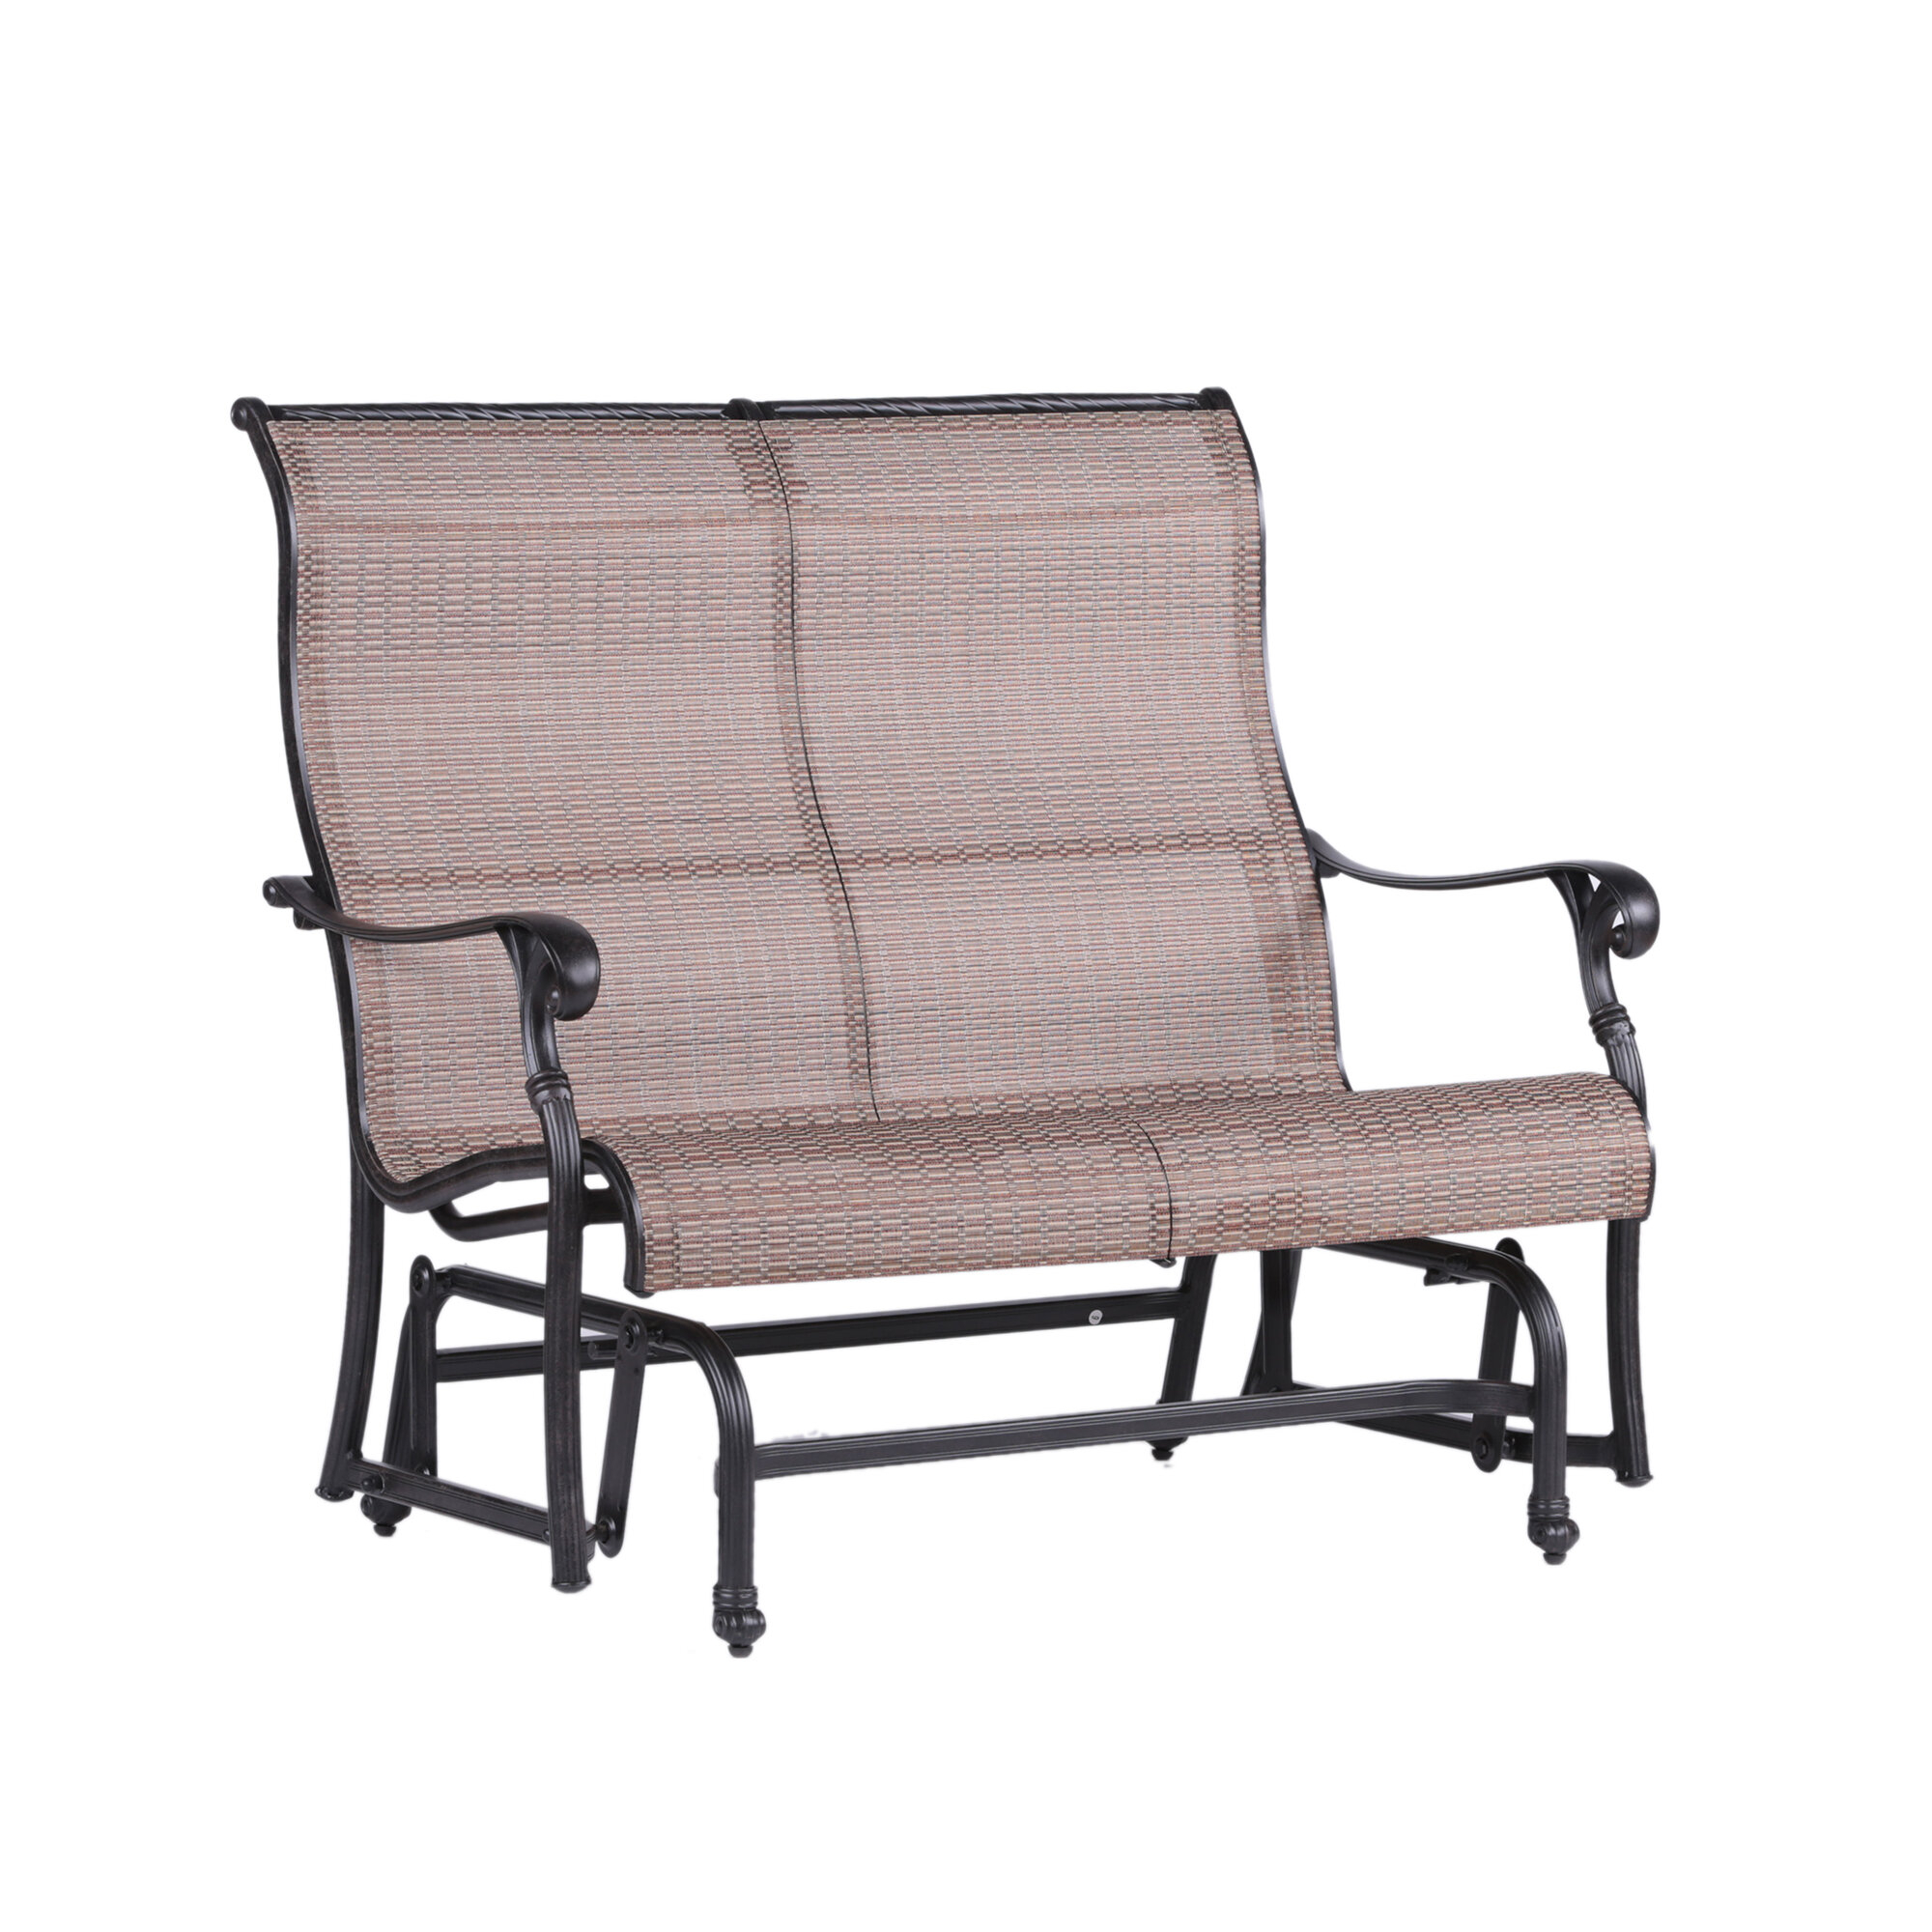 Germano Double Glider Bench With Cushion Throughout Double Glider Benches With Cushion (Image 8 of 25)